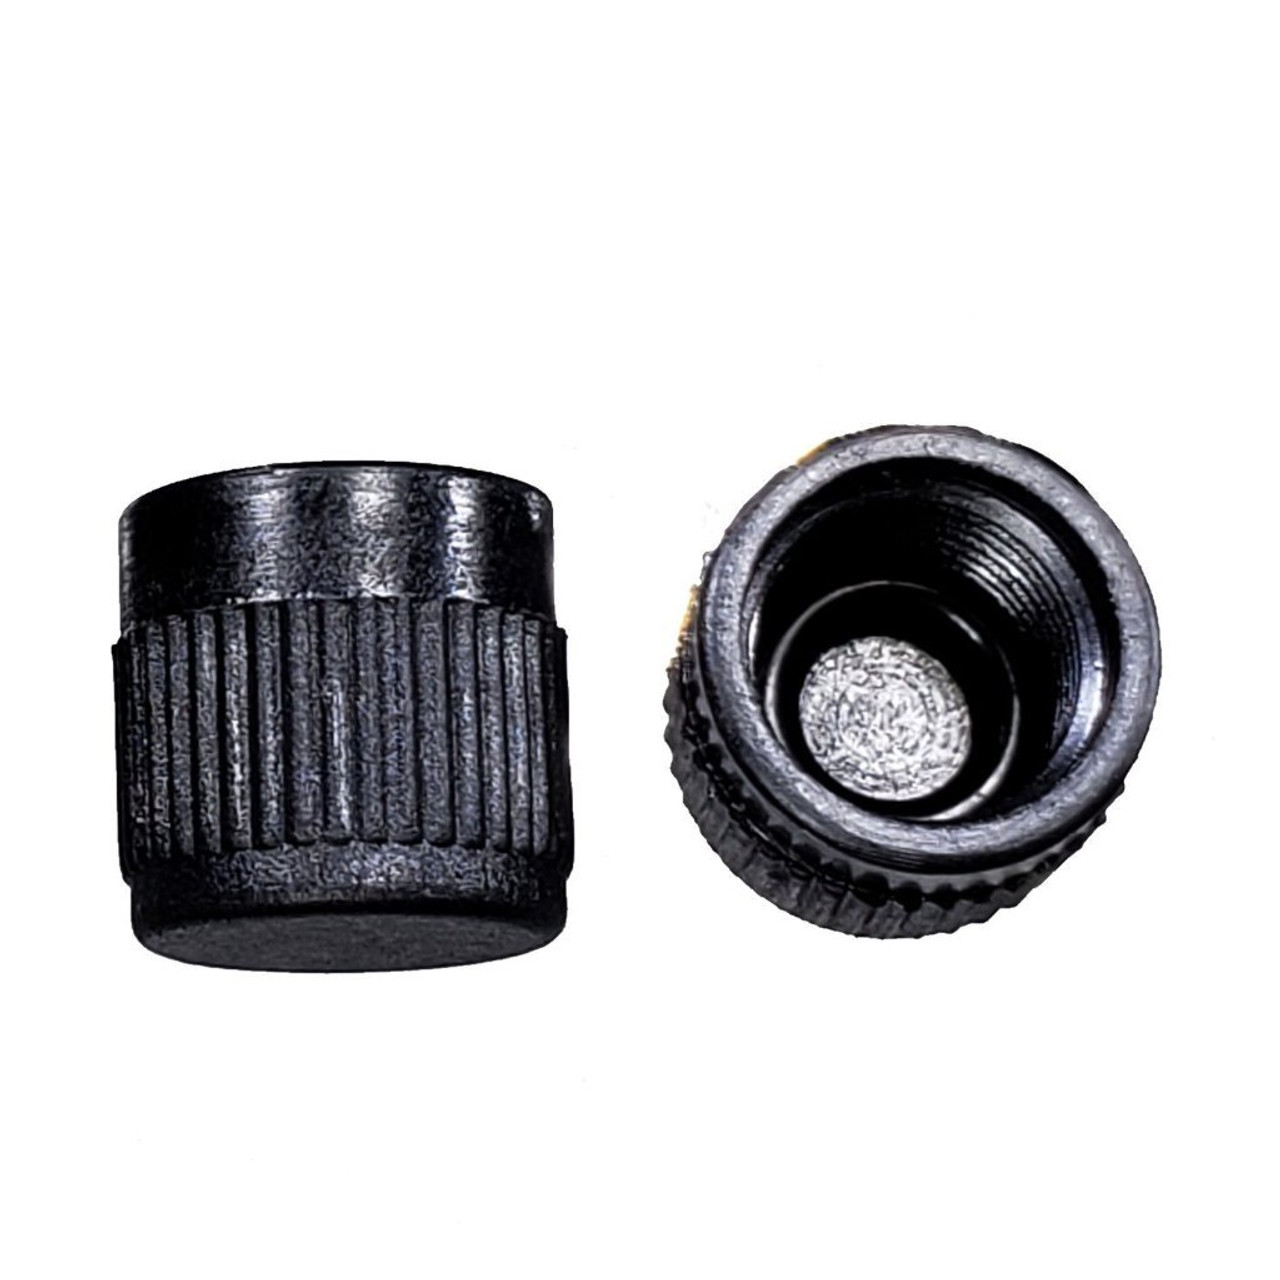 "AC Service Port Cap - Black High Side 3/16"" SAE - R12"